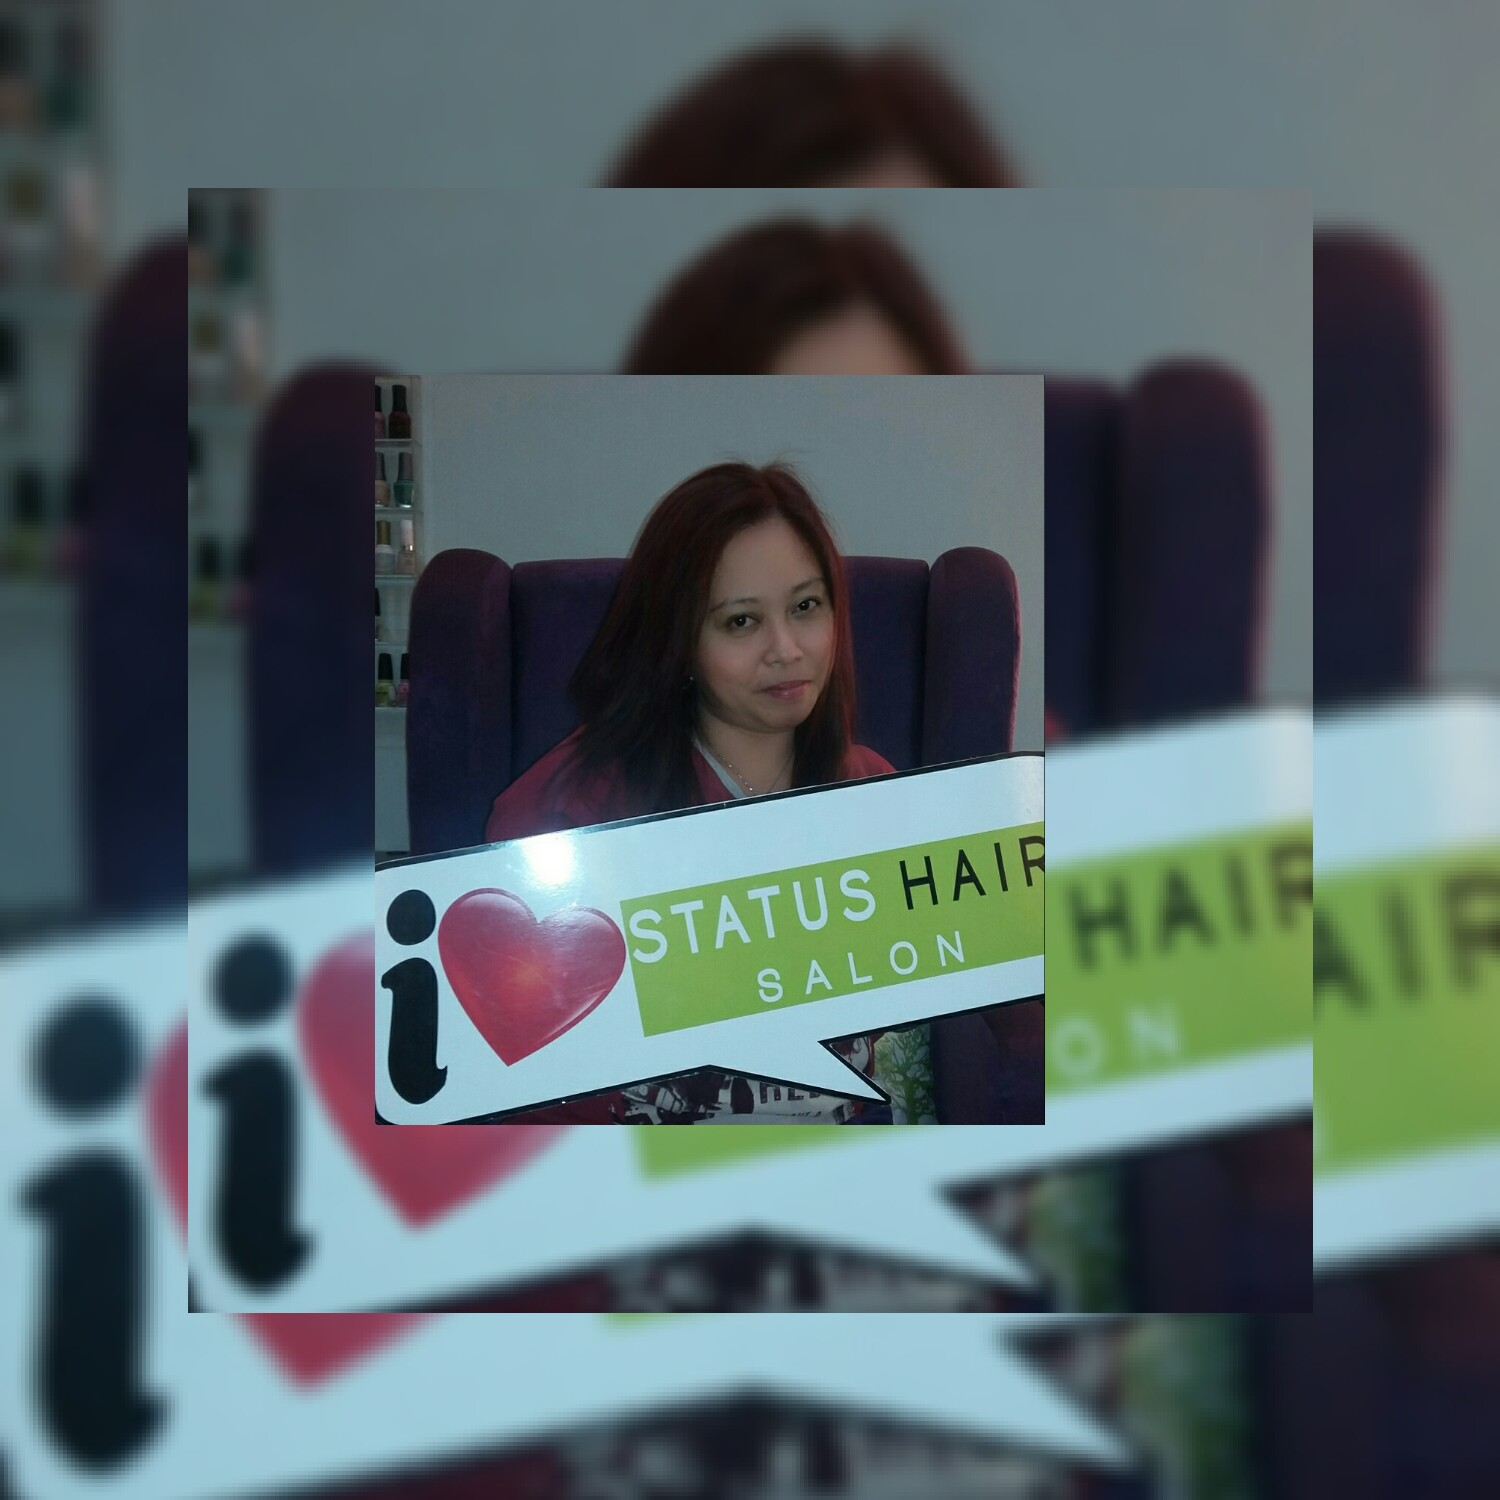 Salon blog review 101 status for 101 beauty salon